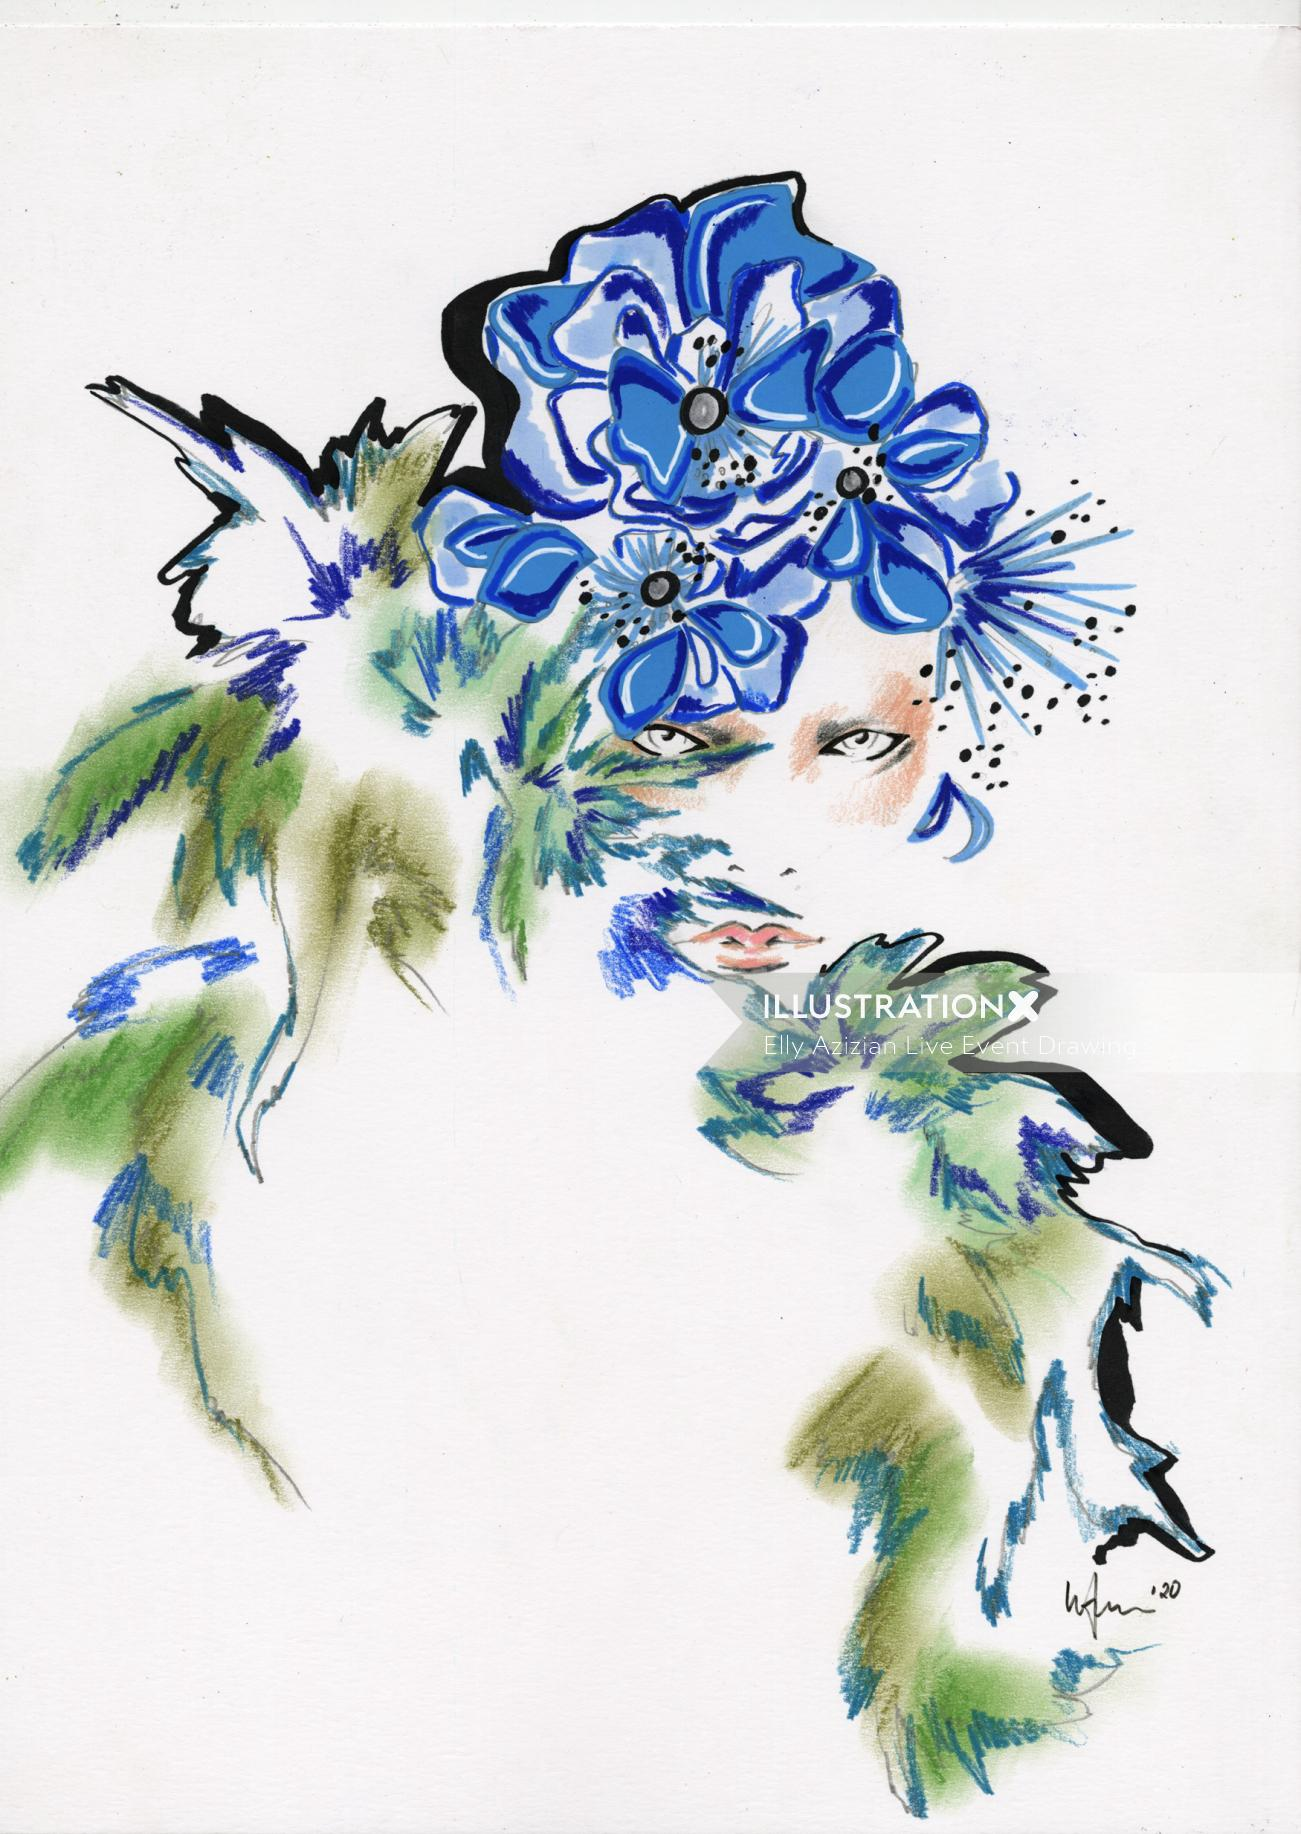 Live Drawing of blue flowers